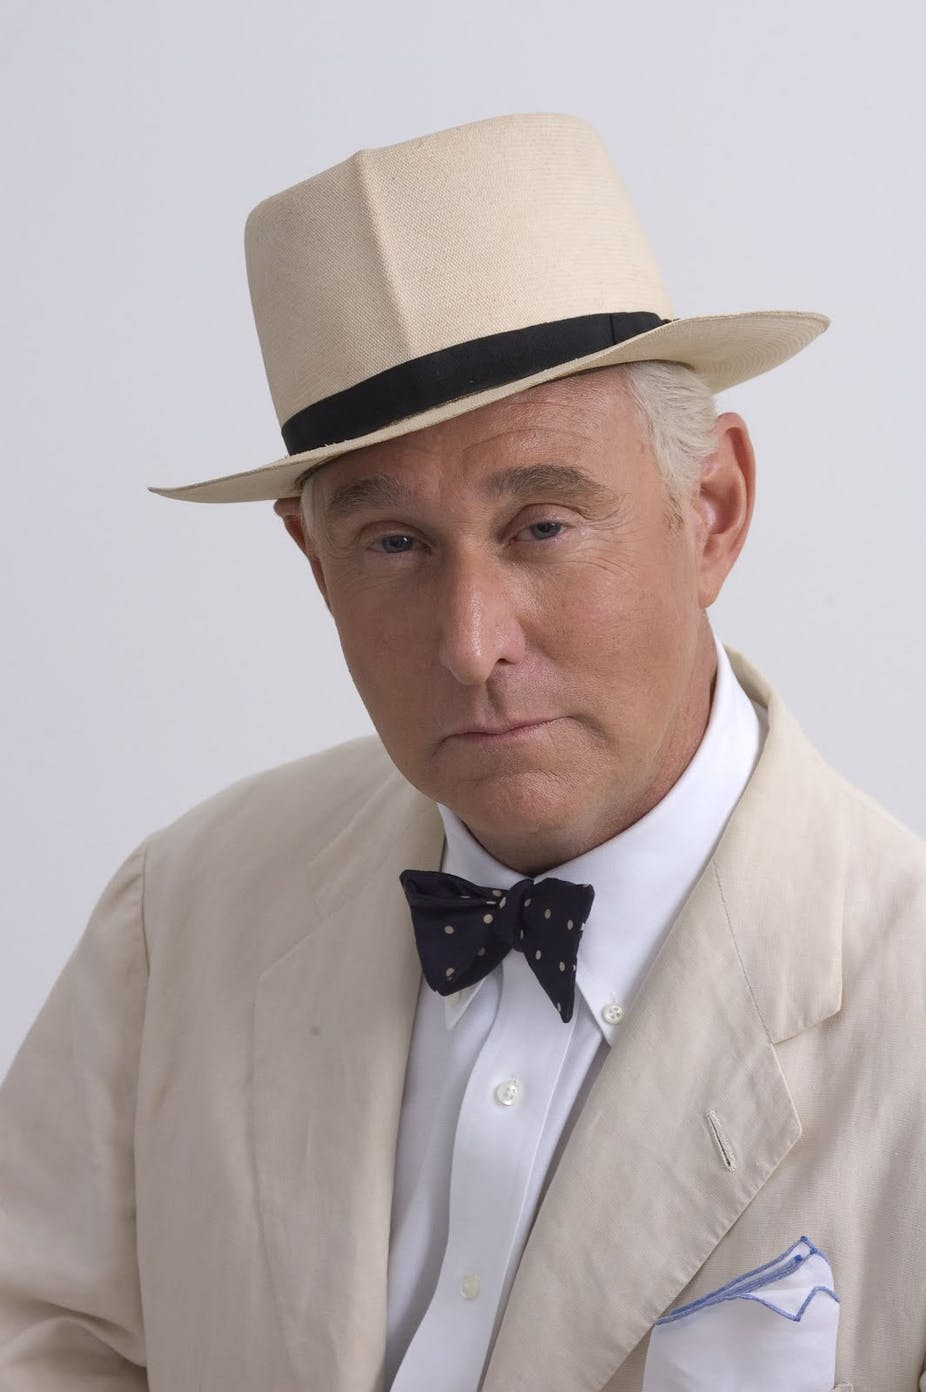 The 66-year old son of father (?) and mother(?) Roger Stone in 2018 photo. Roger Stone earned a  million dollar salary - leaving the net worth at  million in 2018